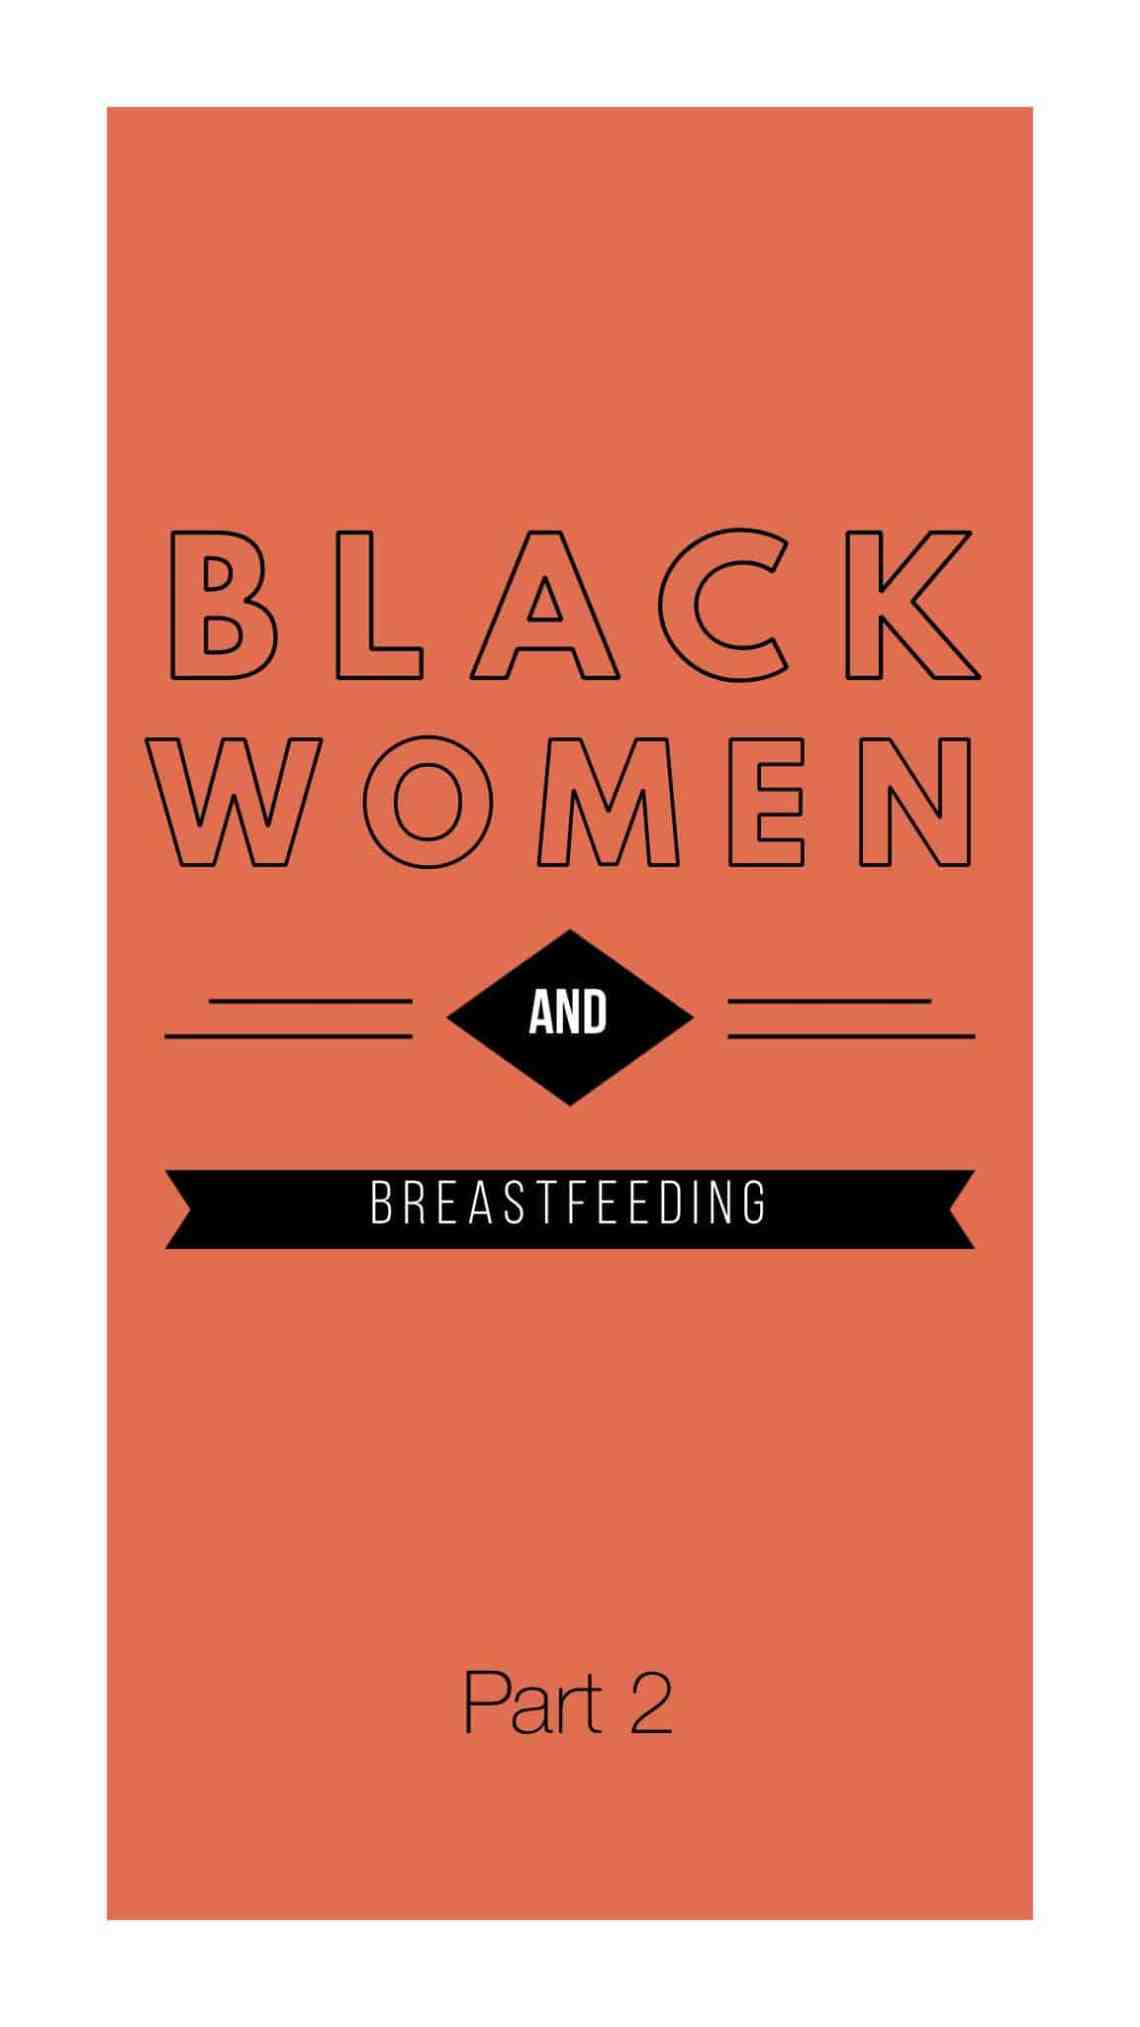 Discussing the importance of black women and breastfeeding with a lactation consult.